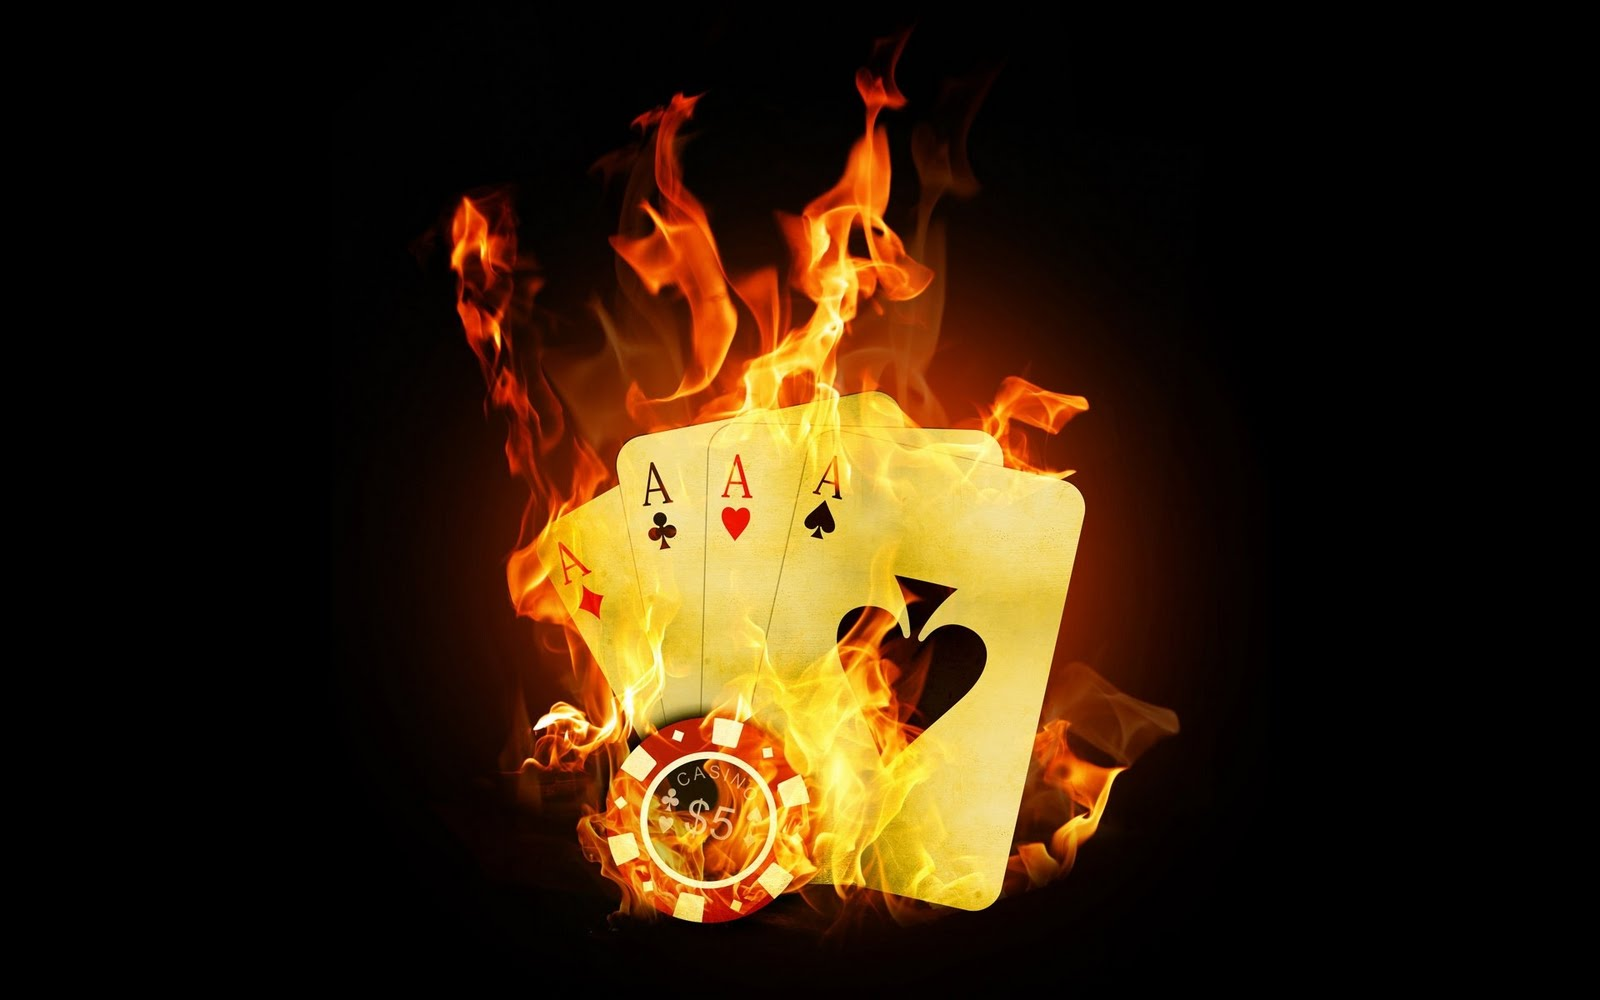 Cool Playing Cards Wallpaper Images amp Pictures   Becuo 1600x1000